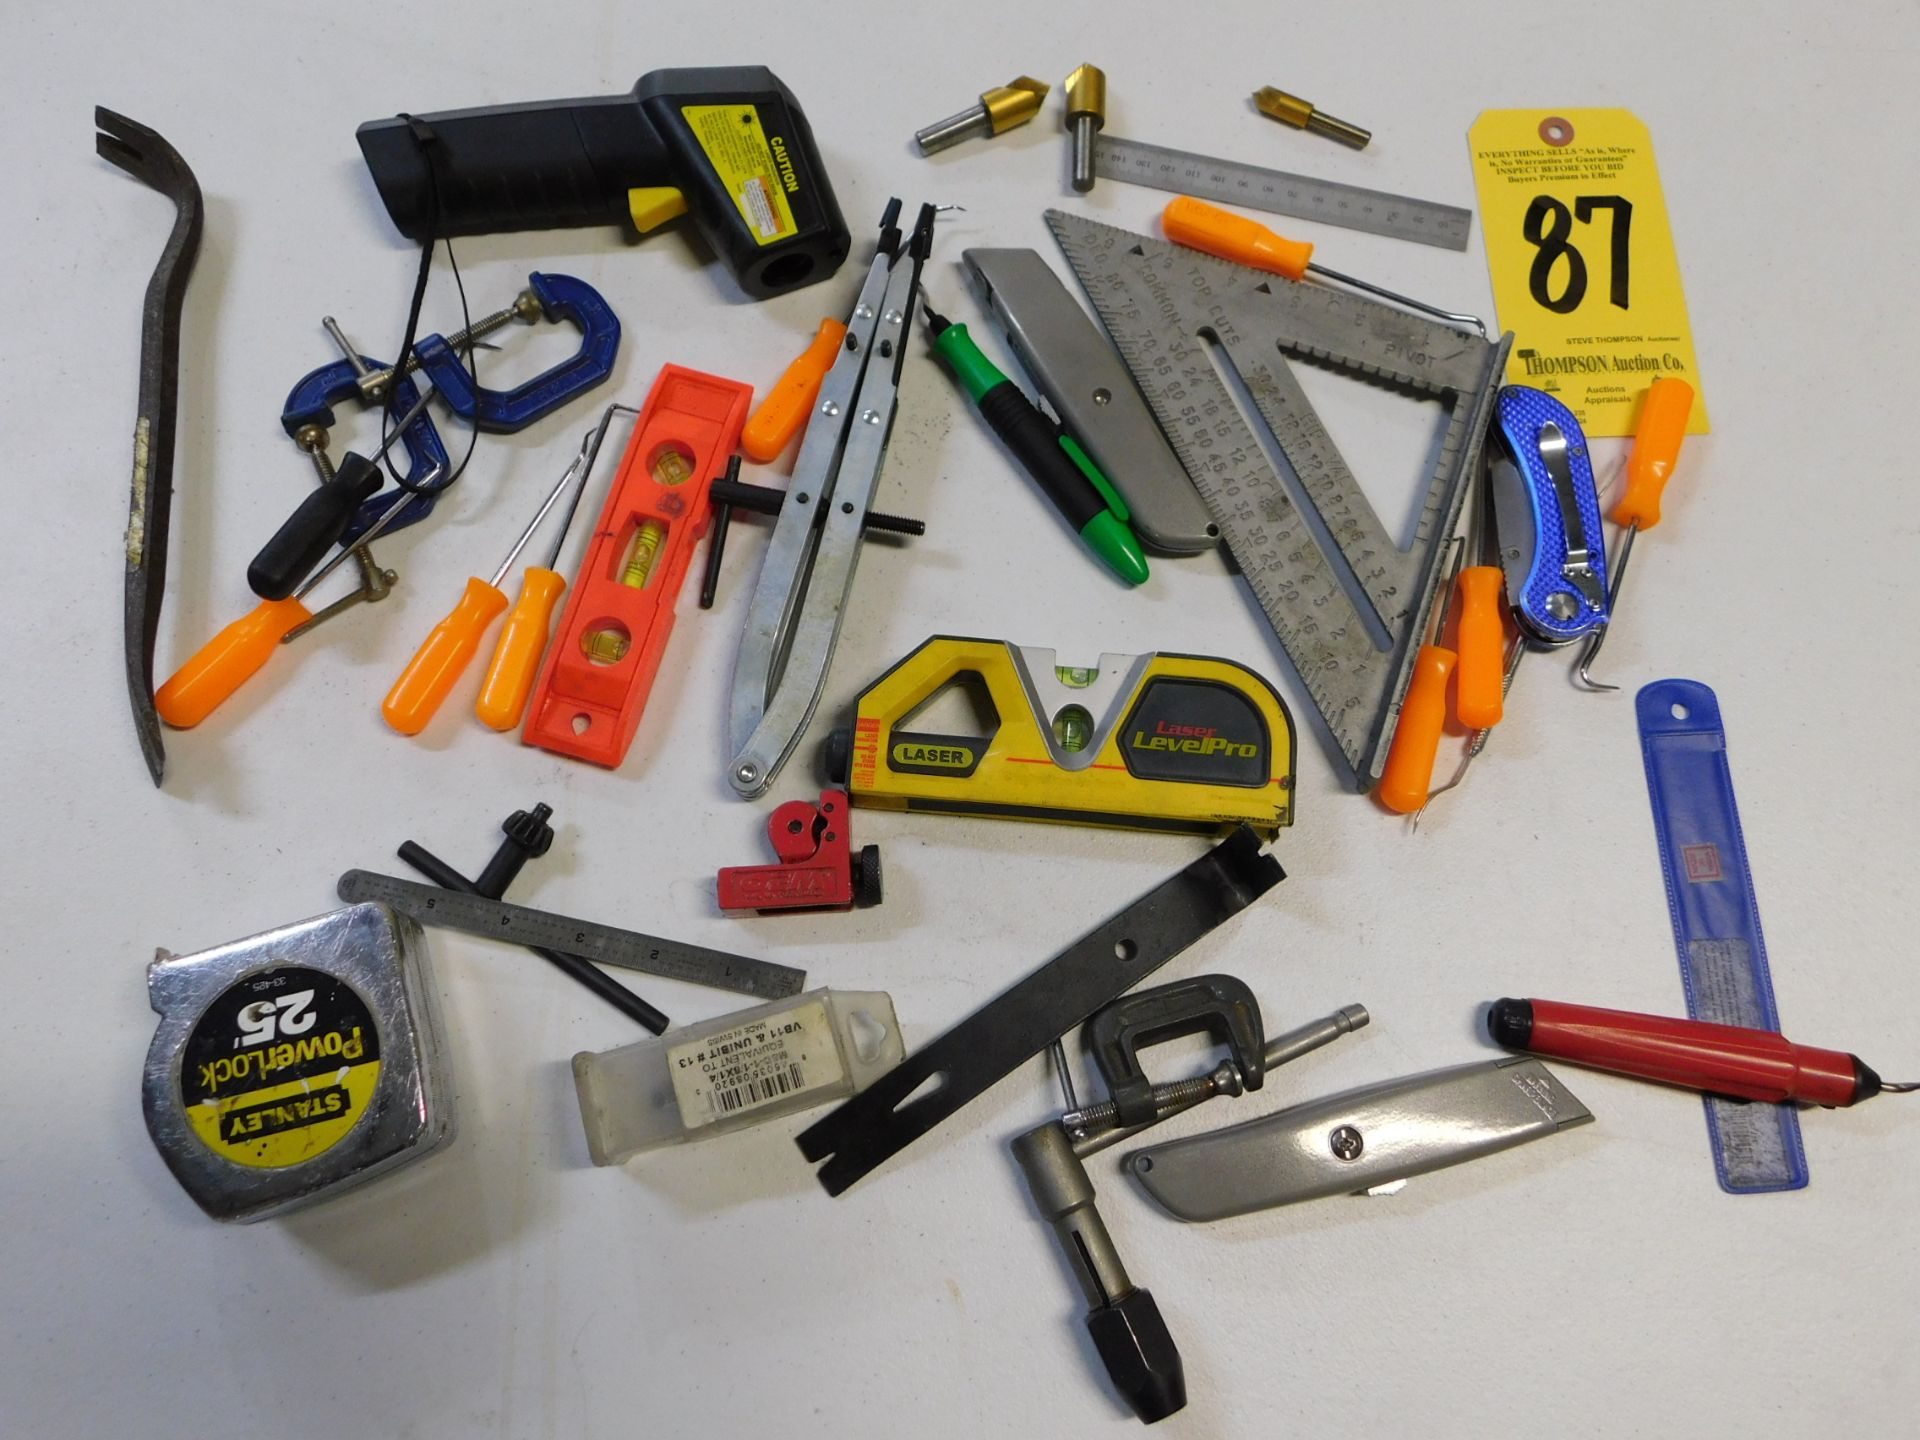 Lot 87 - Miscellaneous Hand Tools, Lot Location 3204 Olympia Dr. A, Lafayette, IN 47909